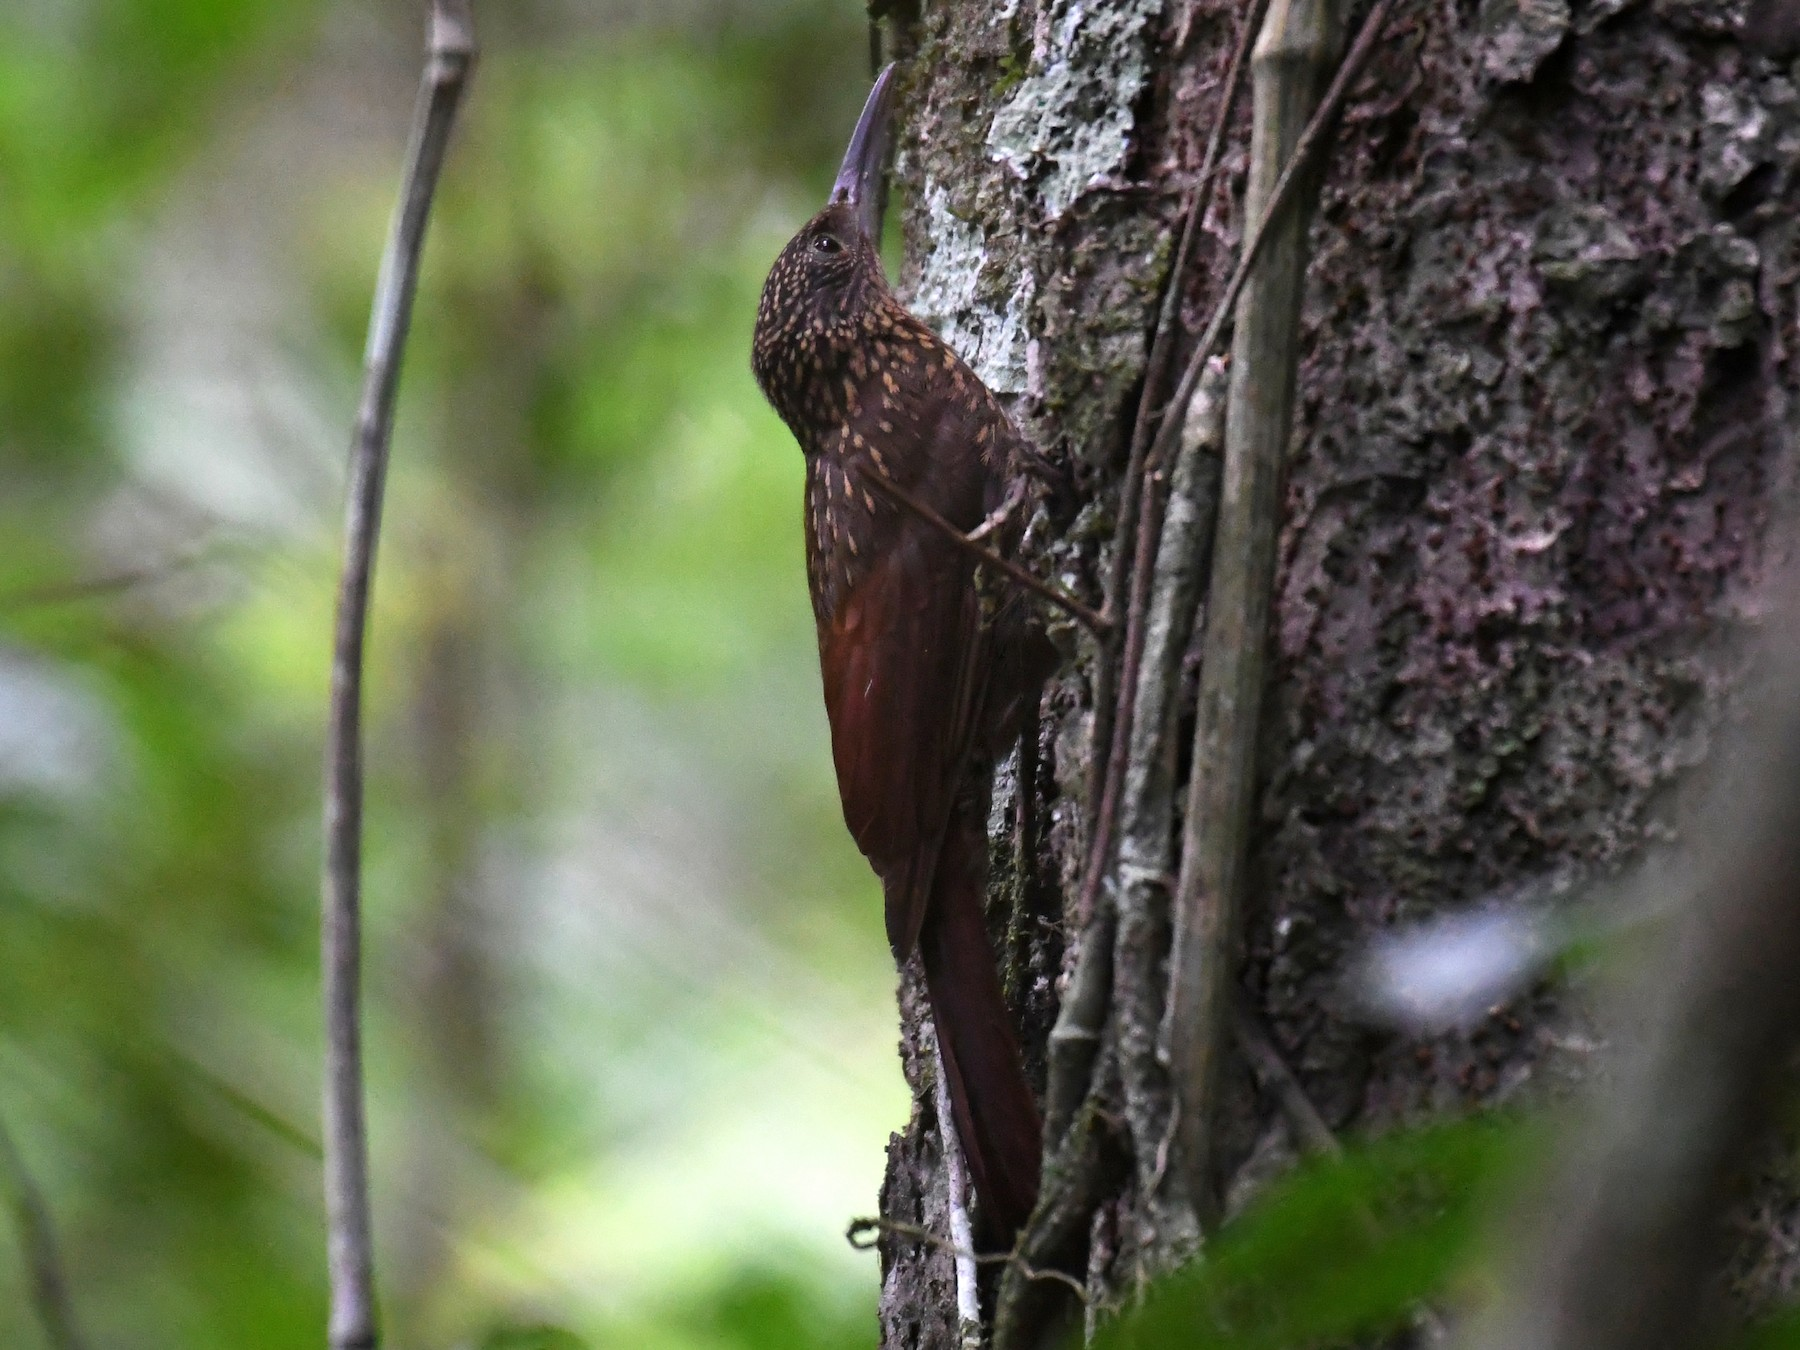 Chestnut-rumped Woodcreeper - Hichem Machouk